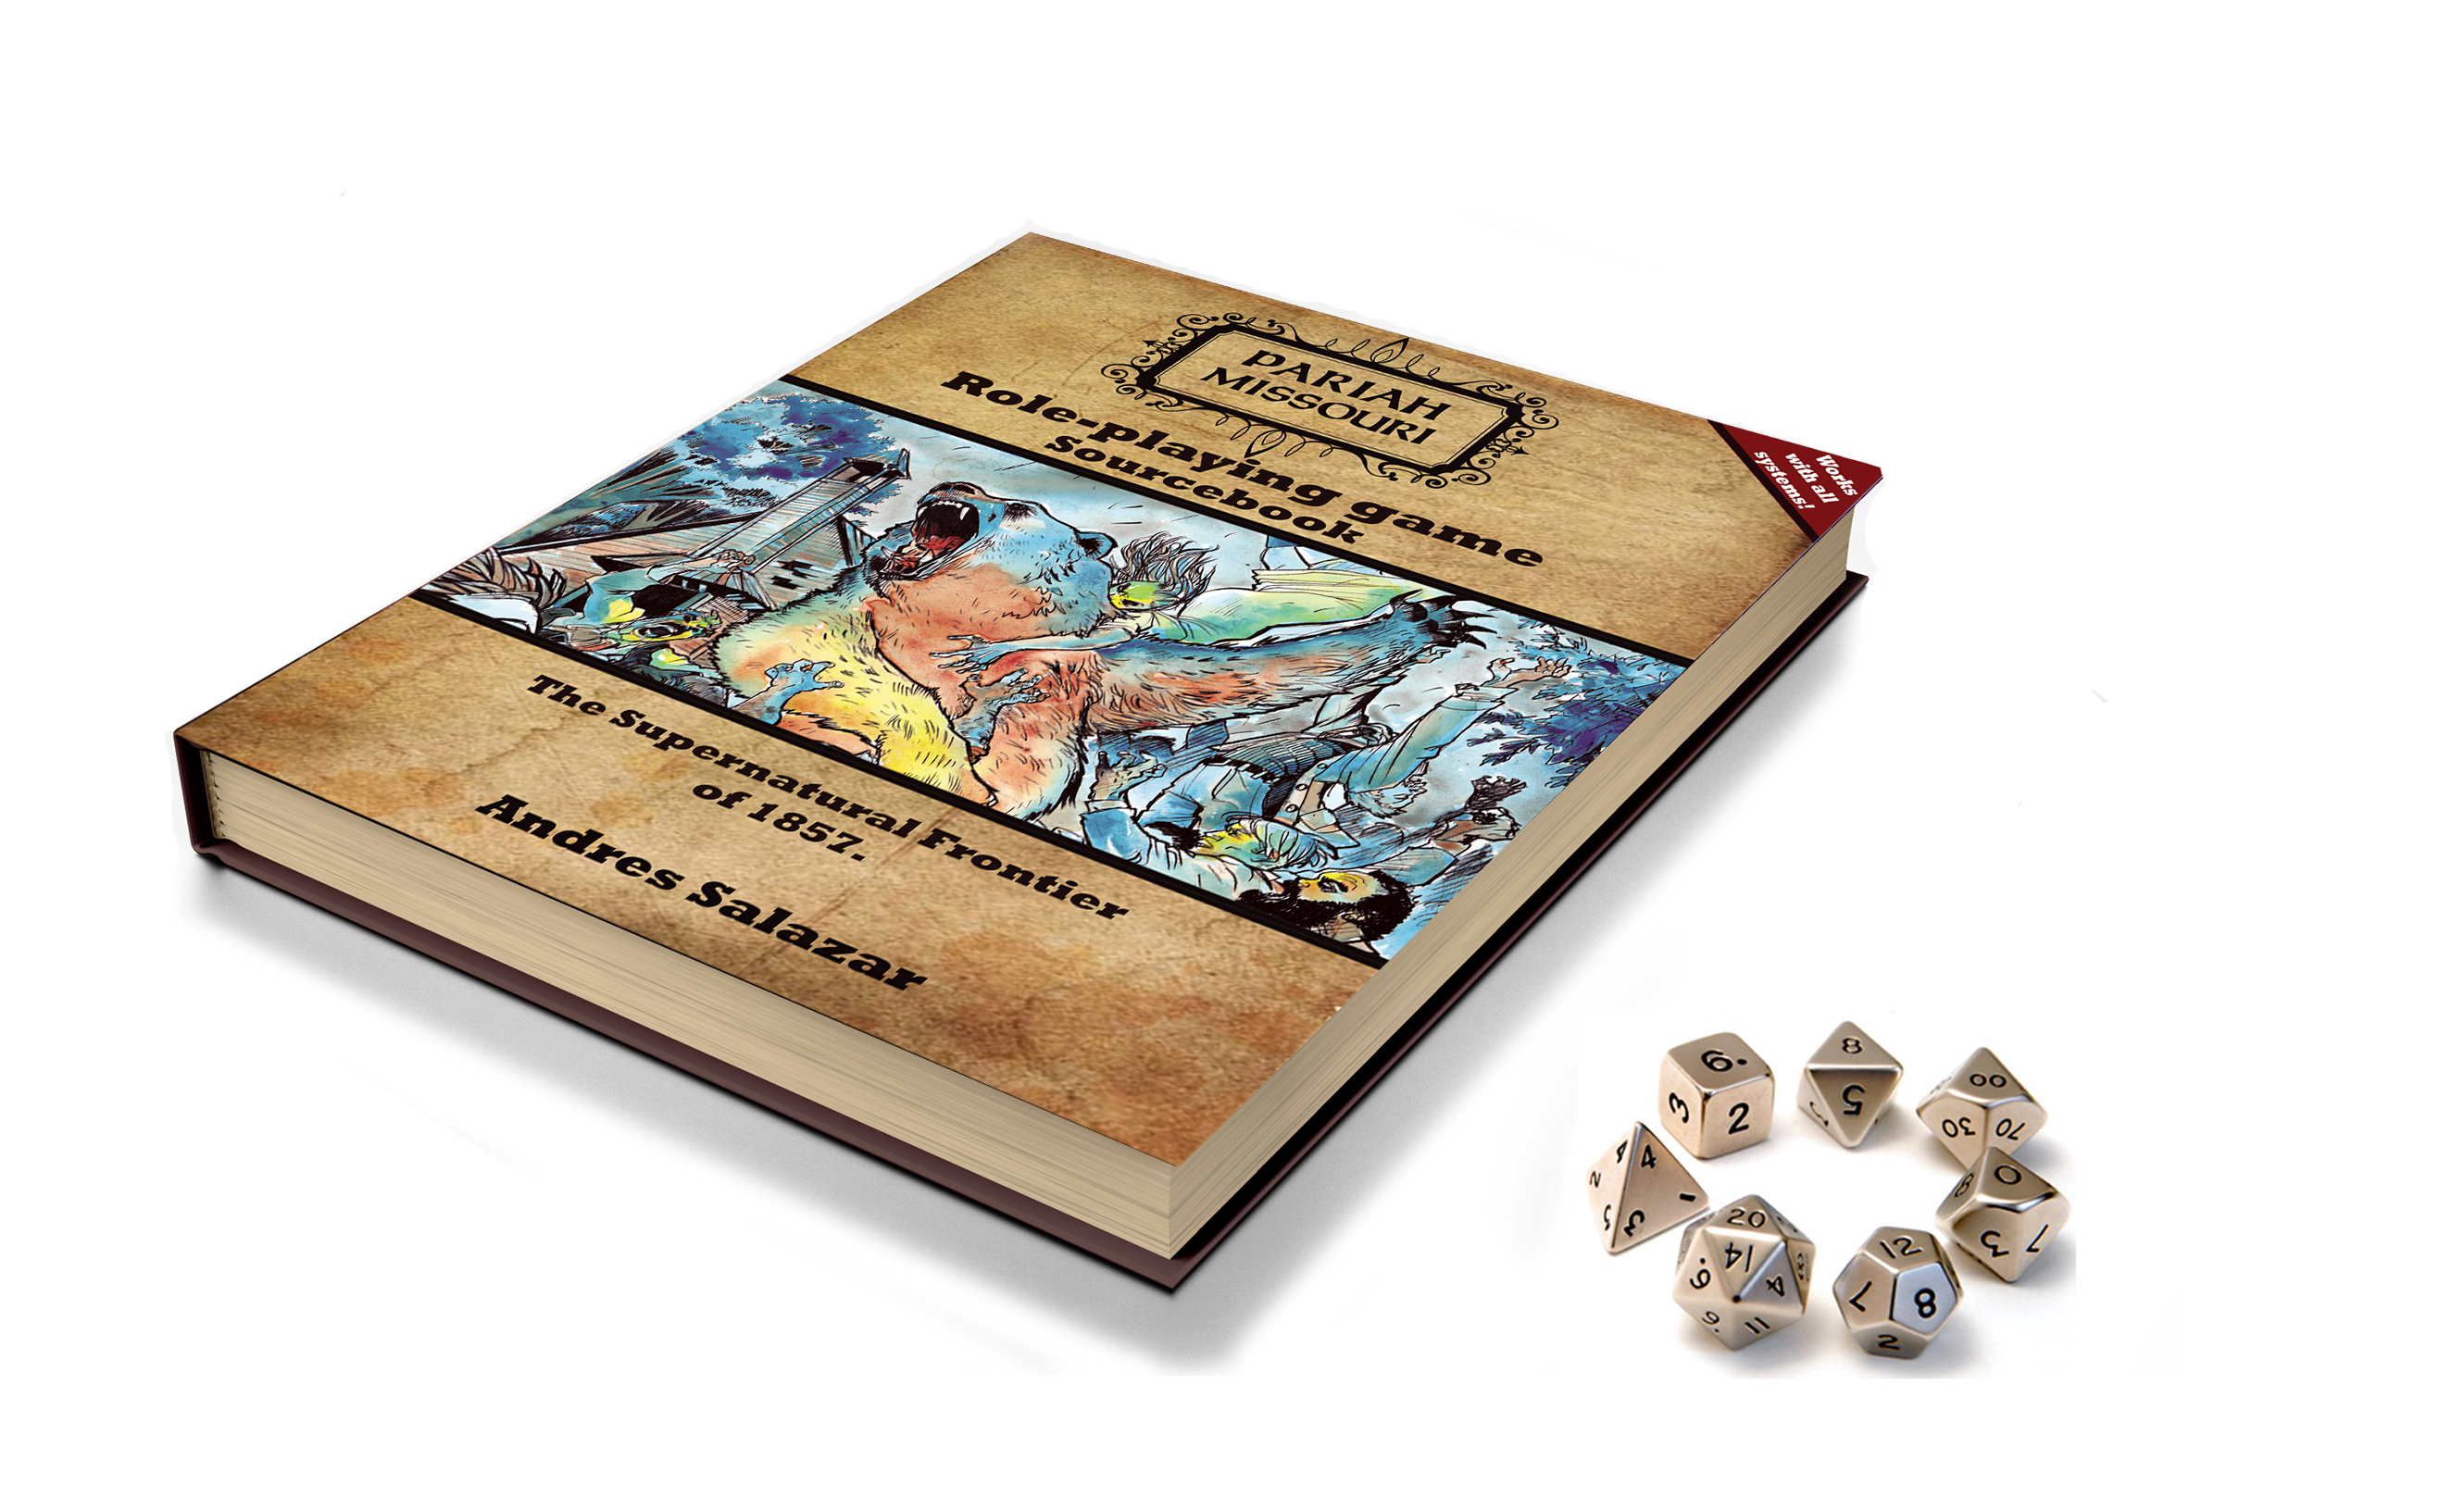 mockup- RPG book with dice